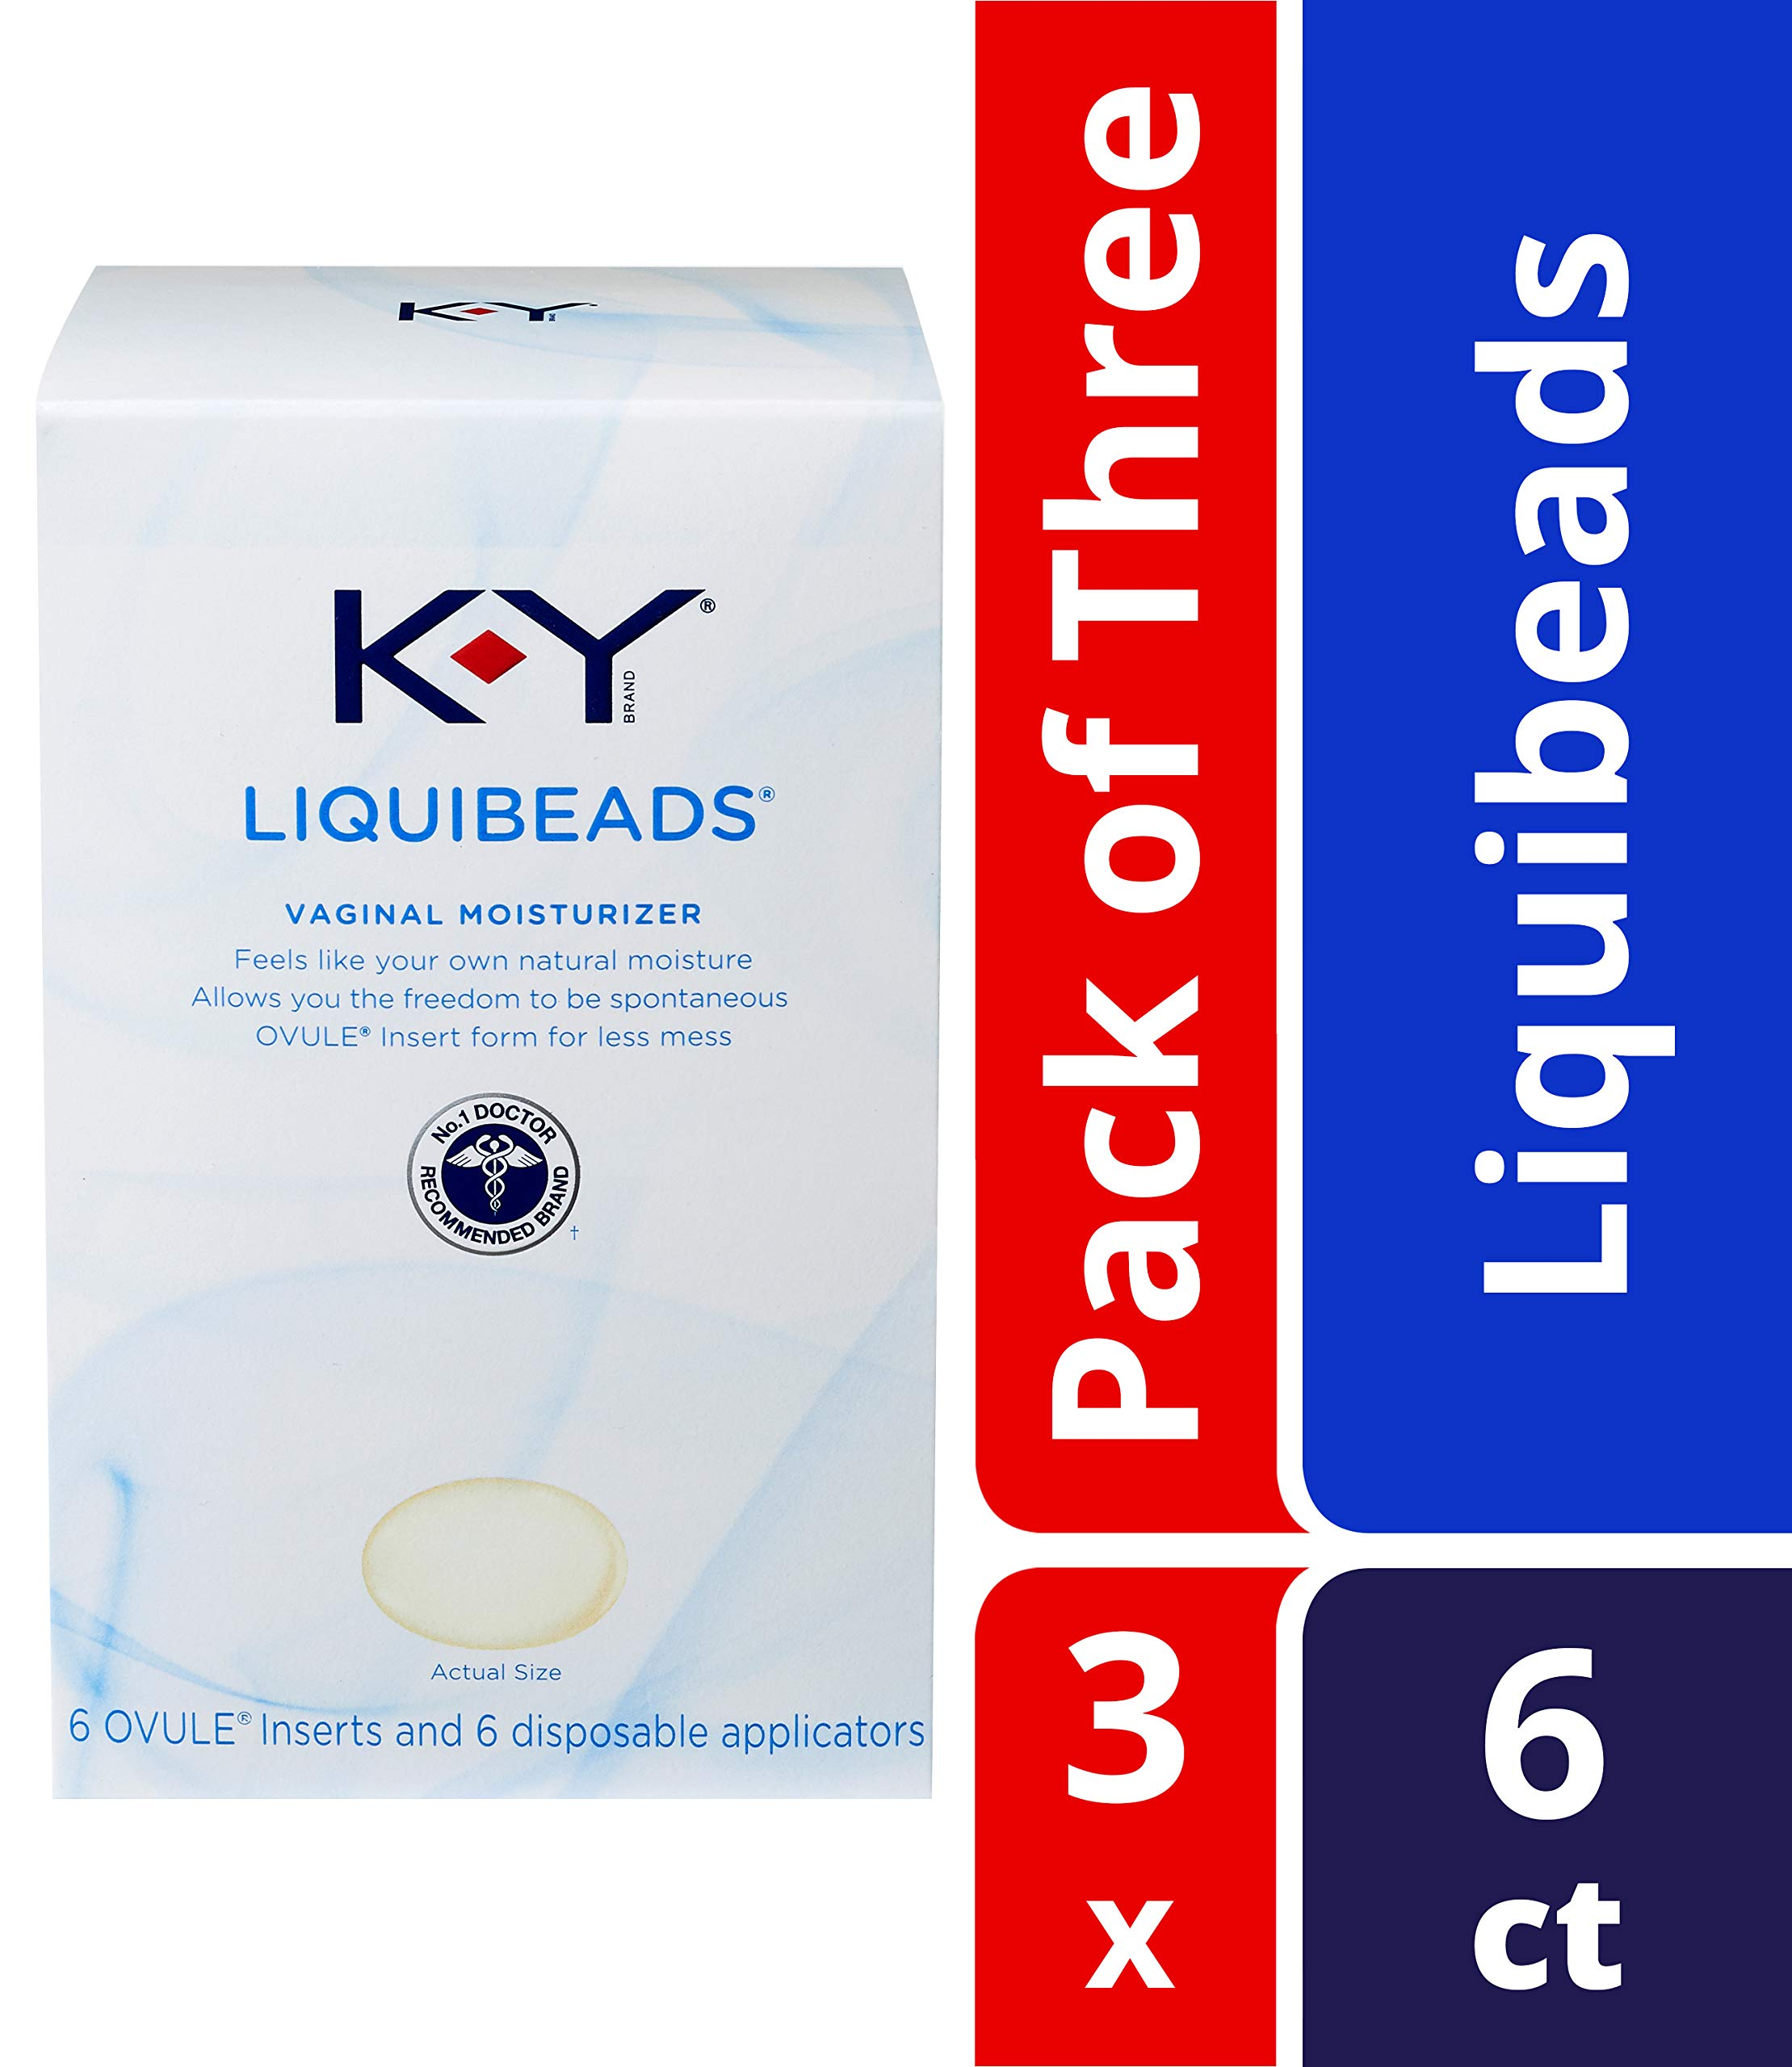 K-Y Liquibeads Vaginal Moisturizer- Bead Inserts With Applicators To Restore Natural Moisture, 6 Count (Pack of 3) by K-Y